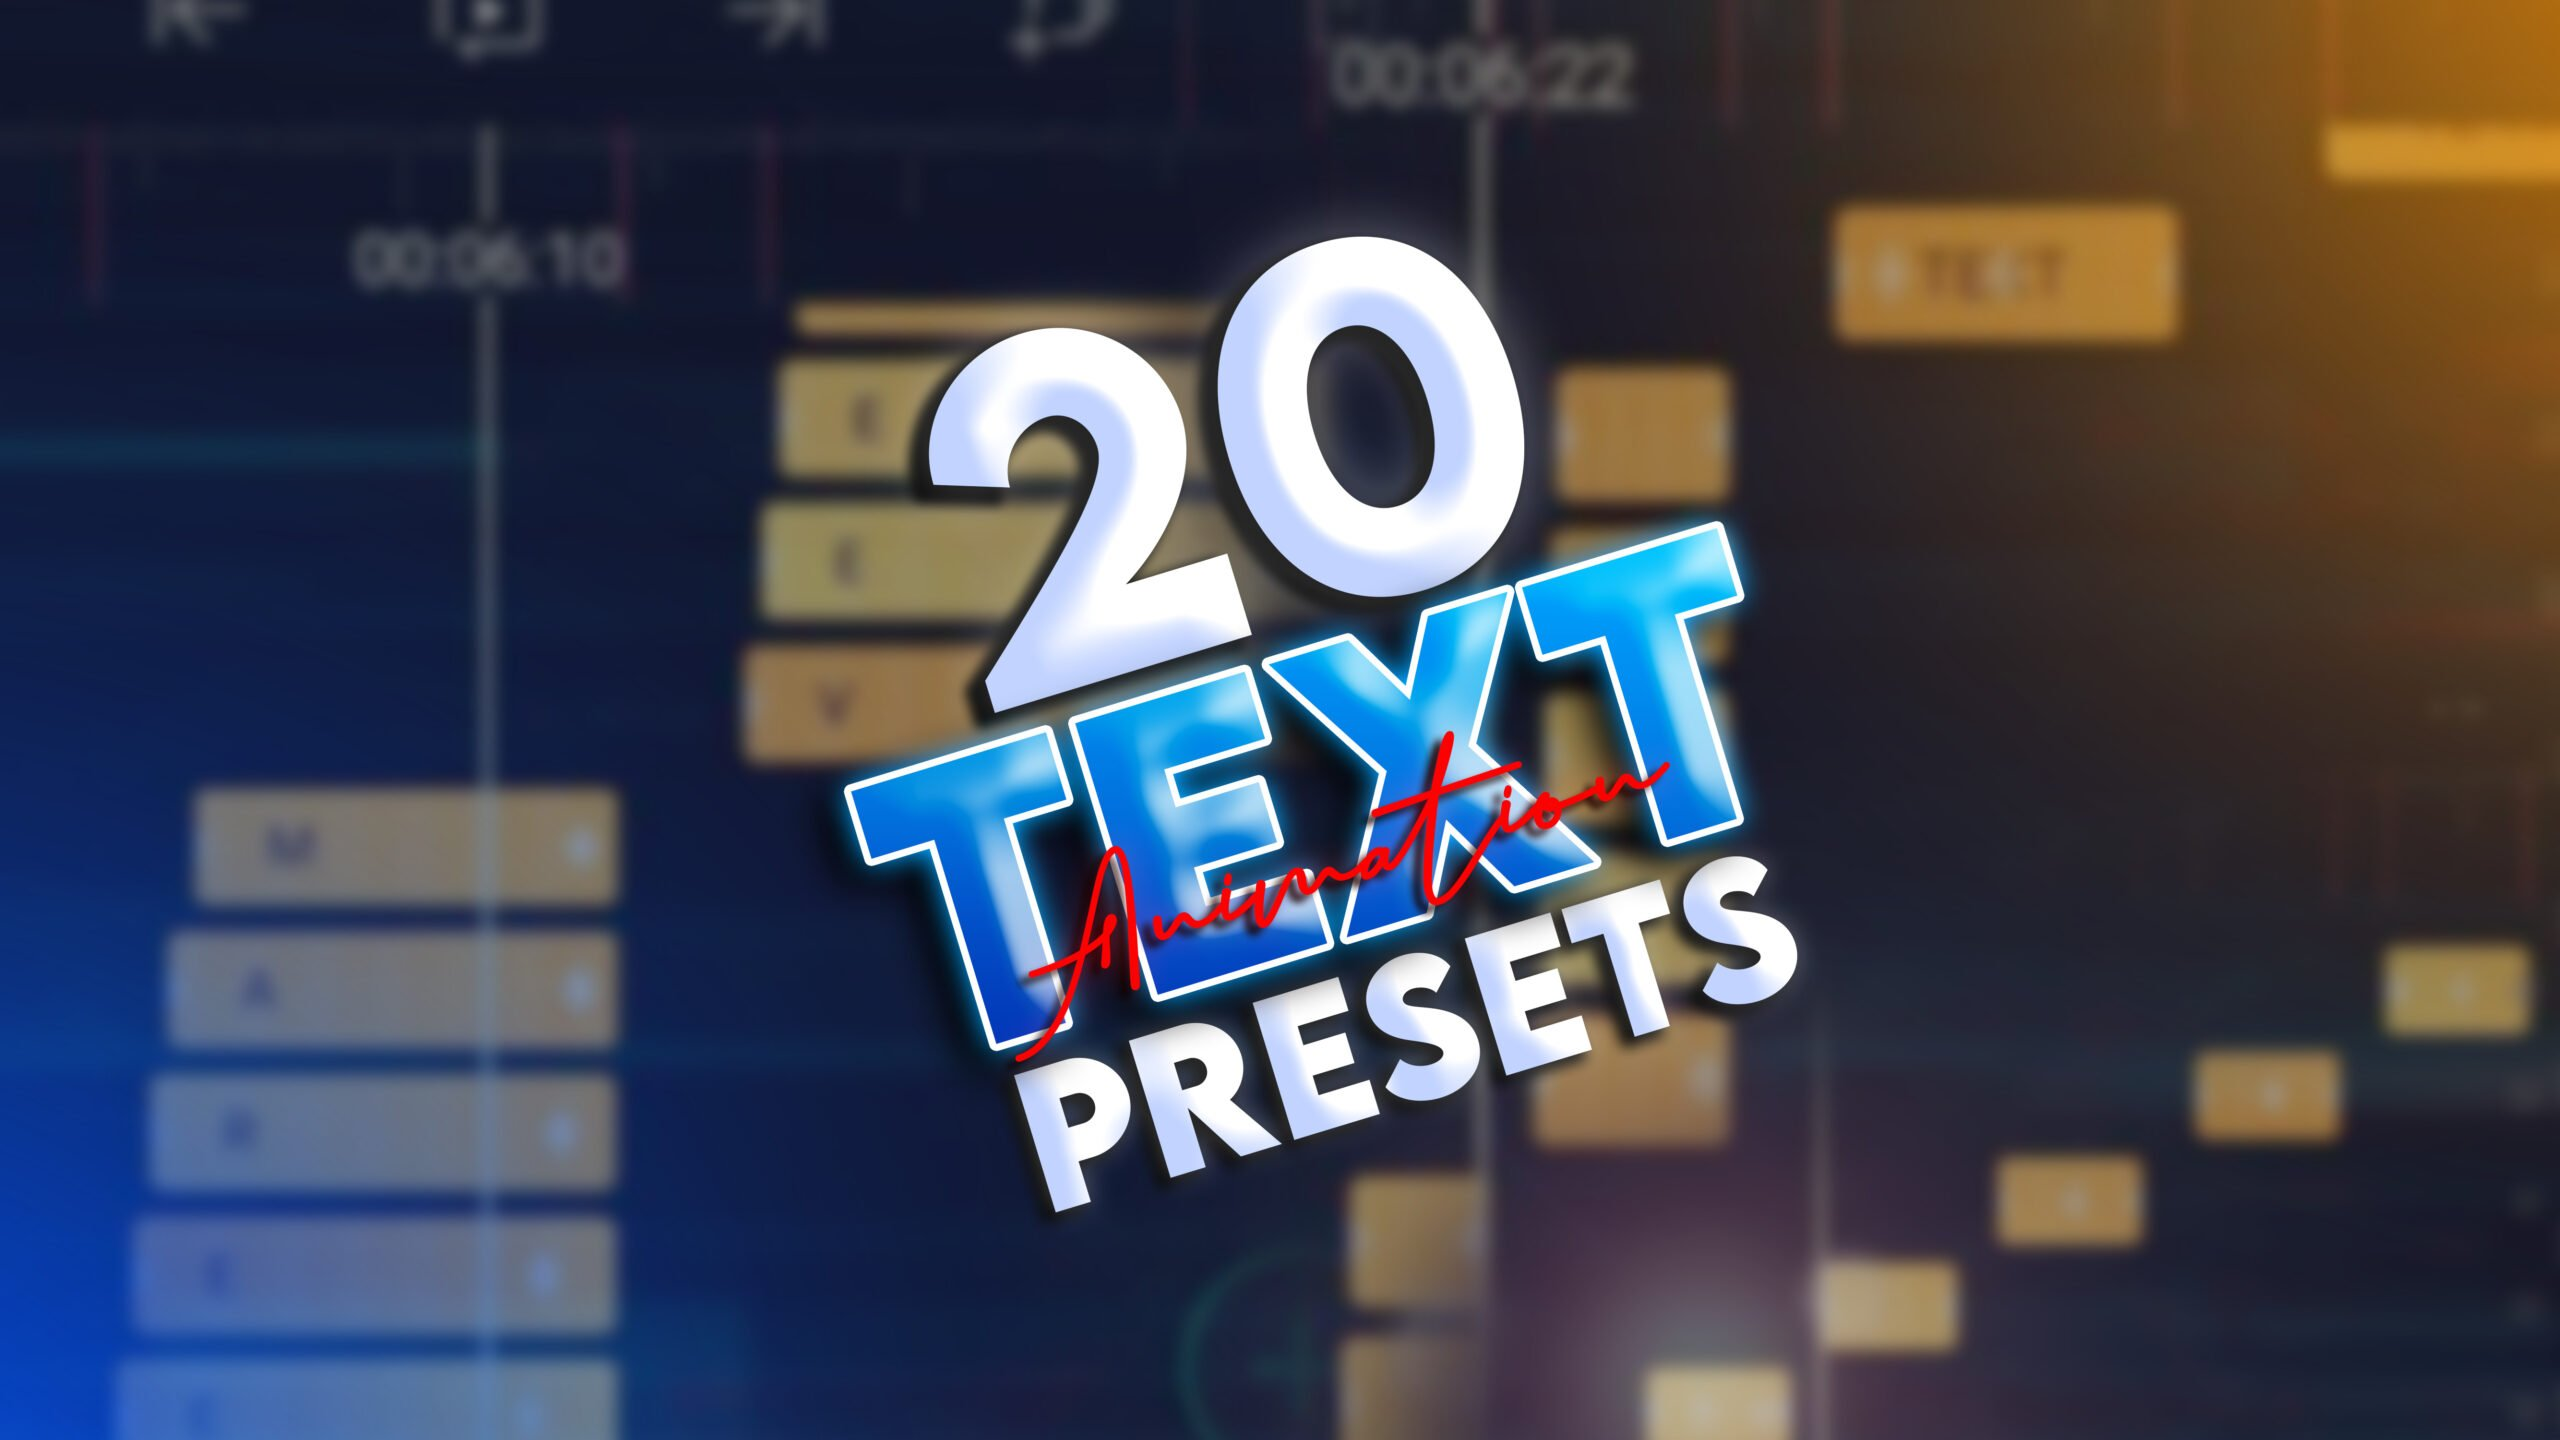 TOP 20 Text animation Presets Link | PRESETS#1022 | Alight motion text presets